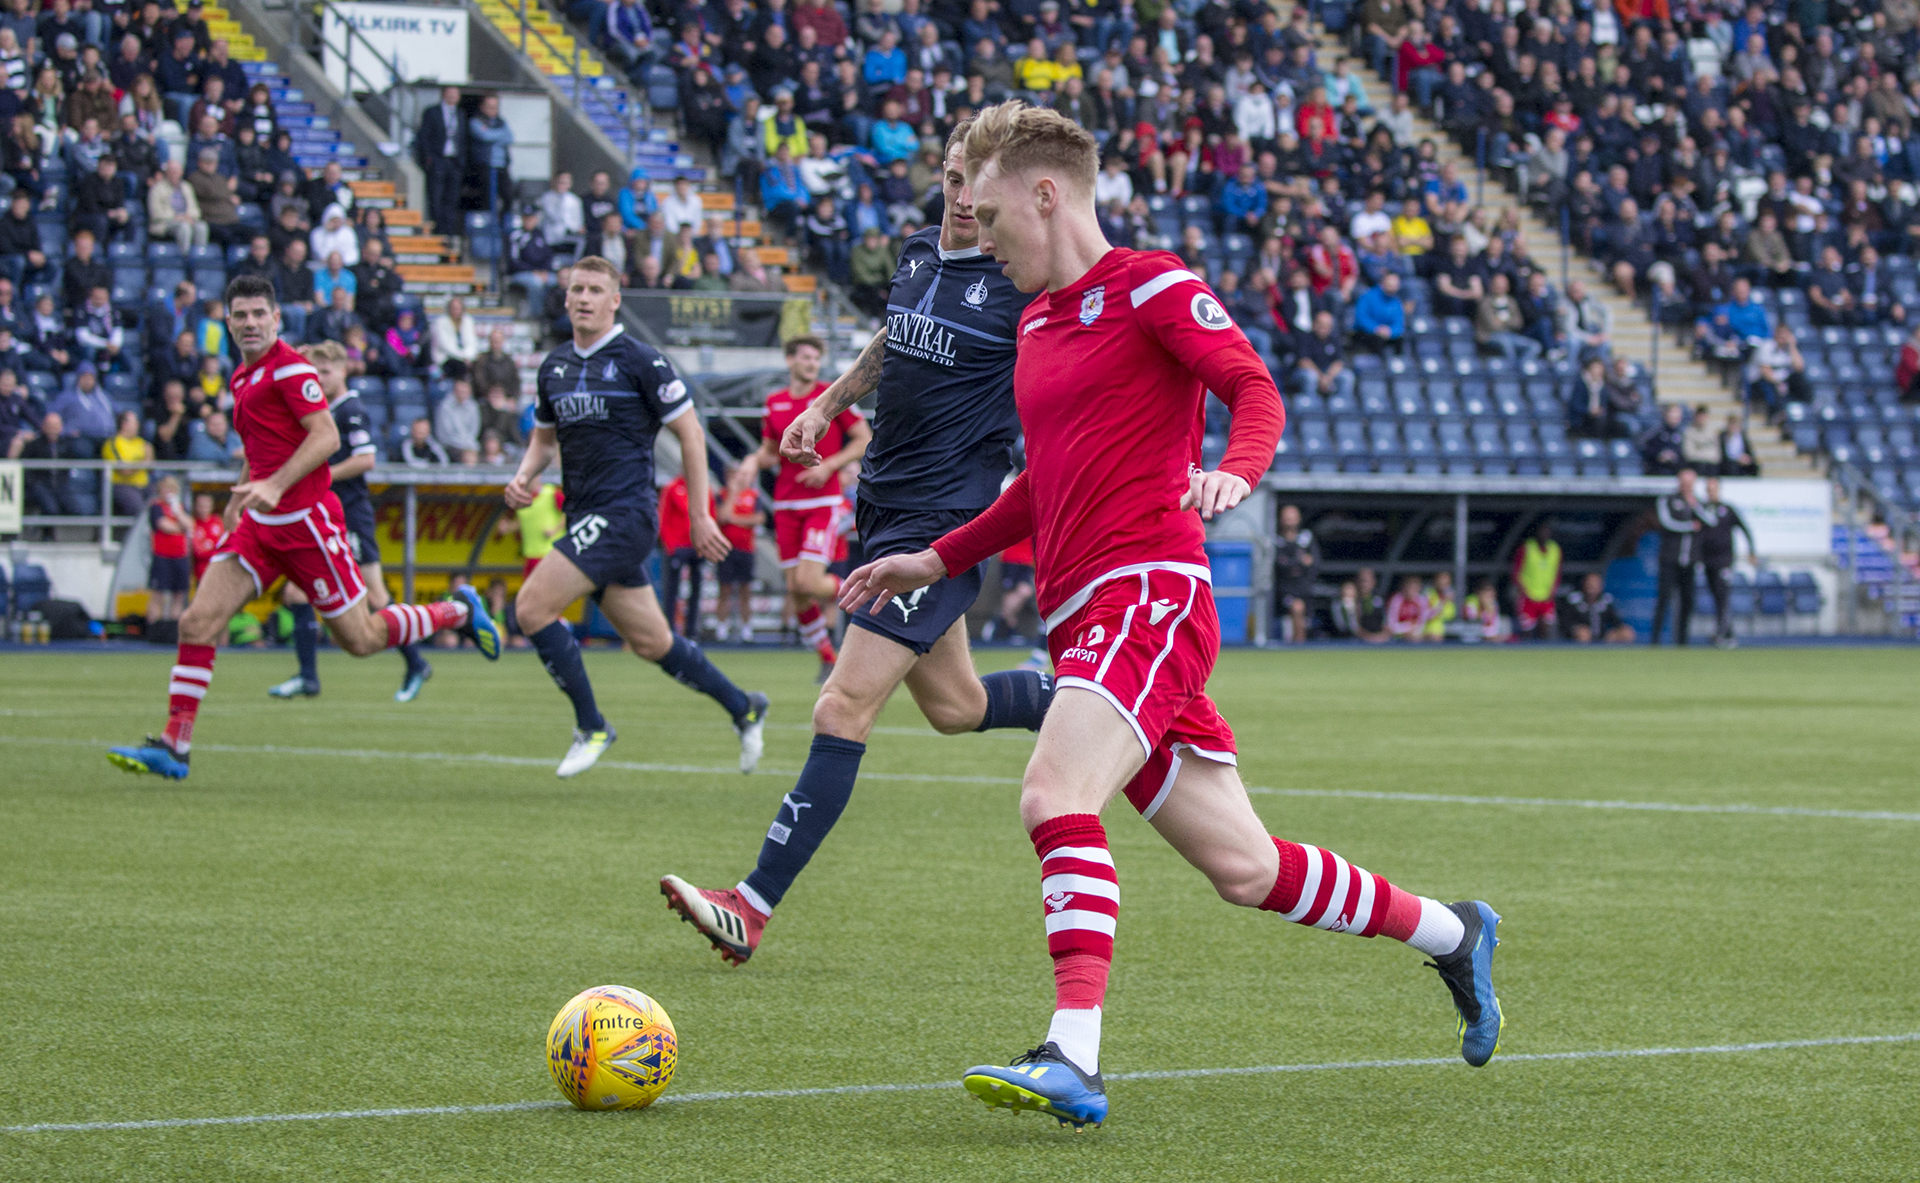 Declan Poole was a thorn in Falkirk's side all afternoon © NCM Media